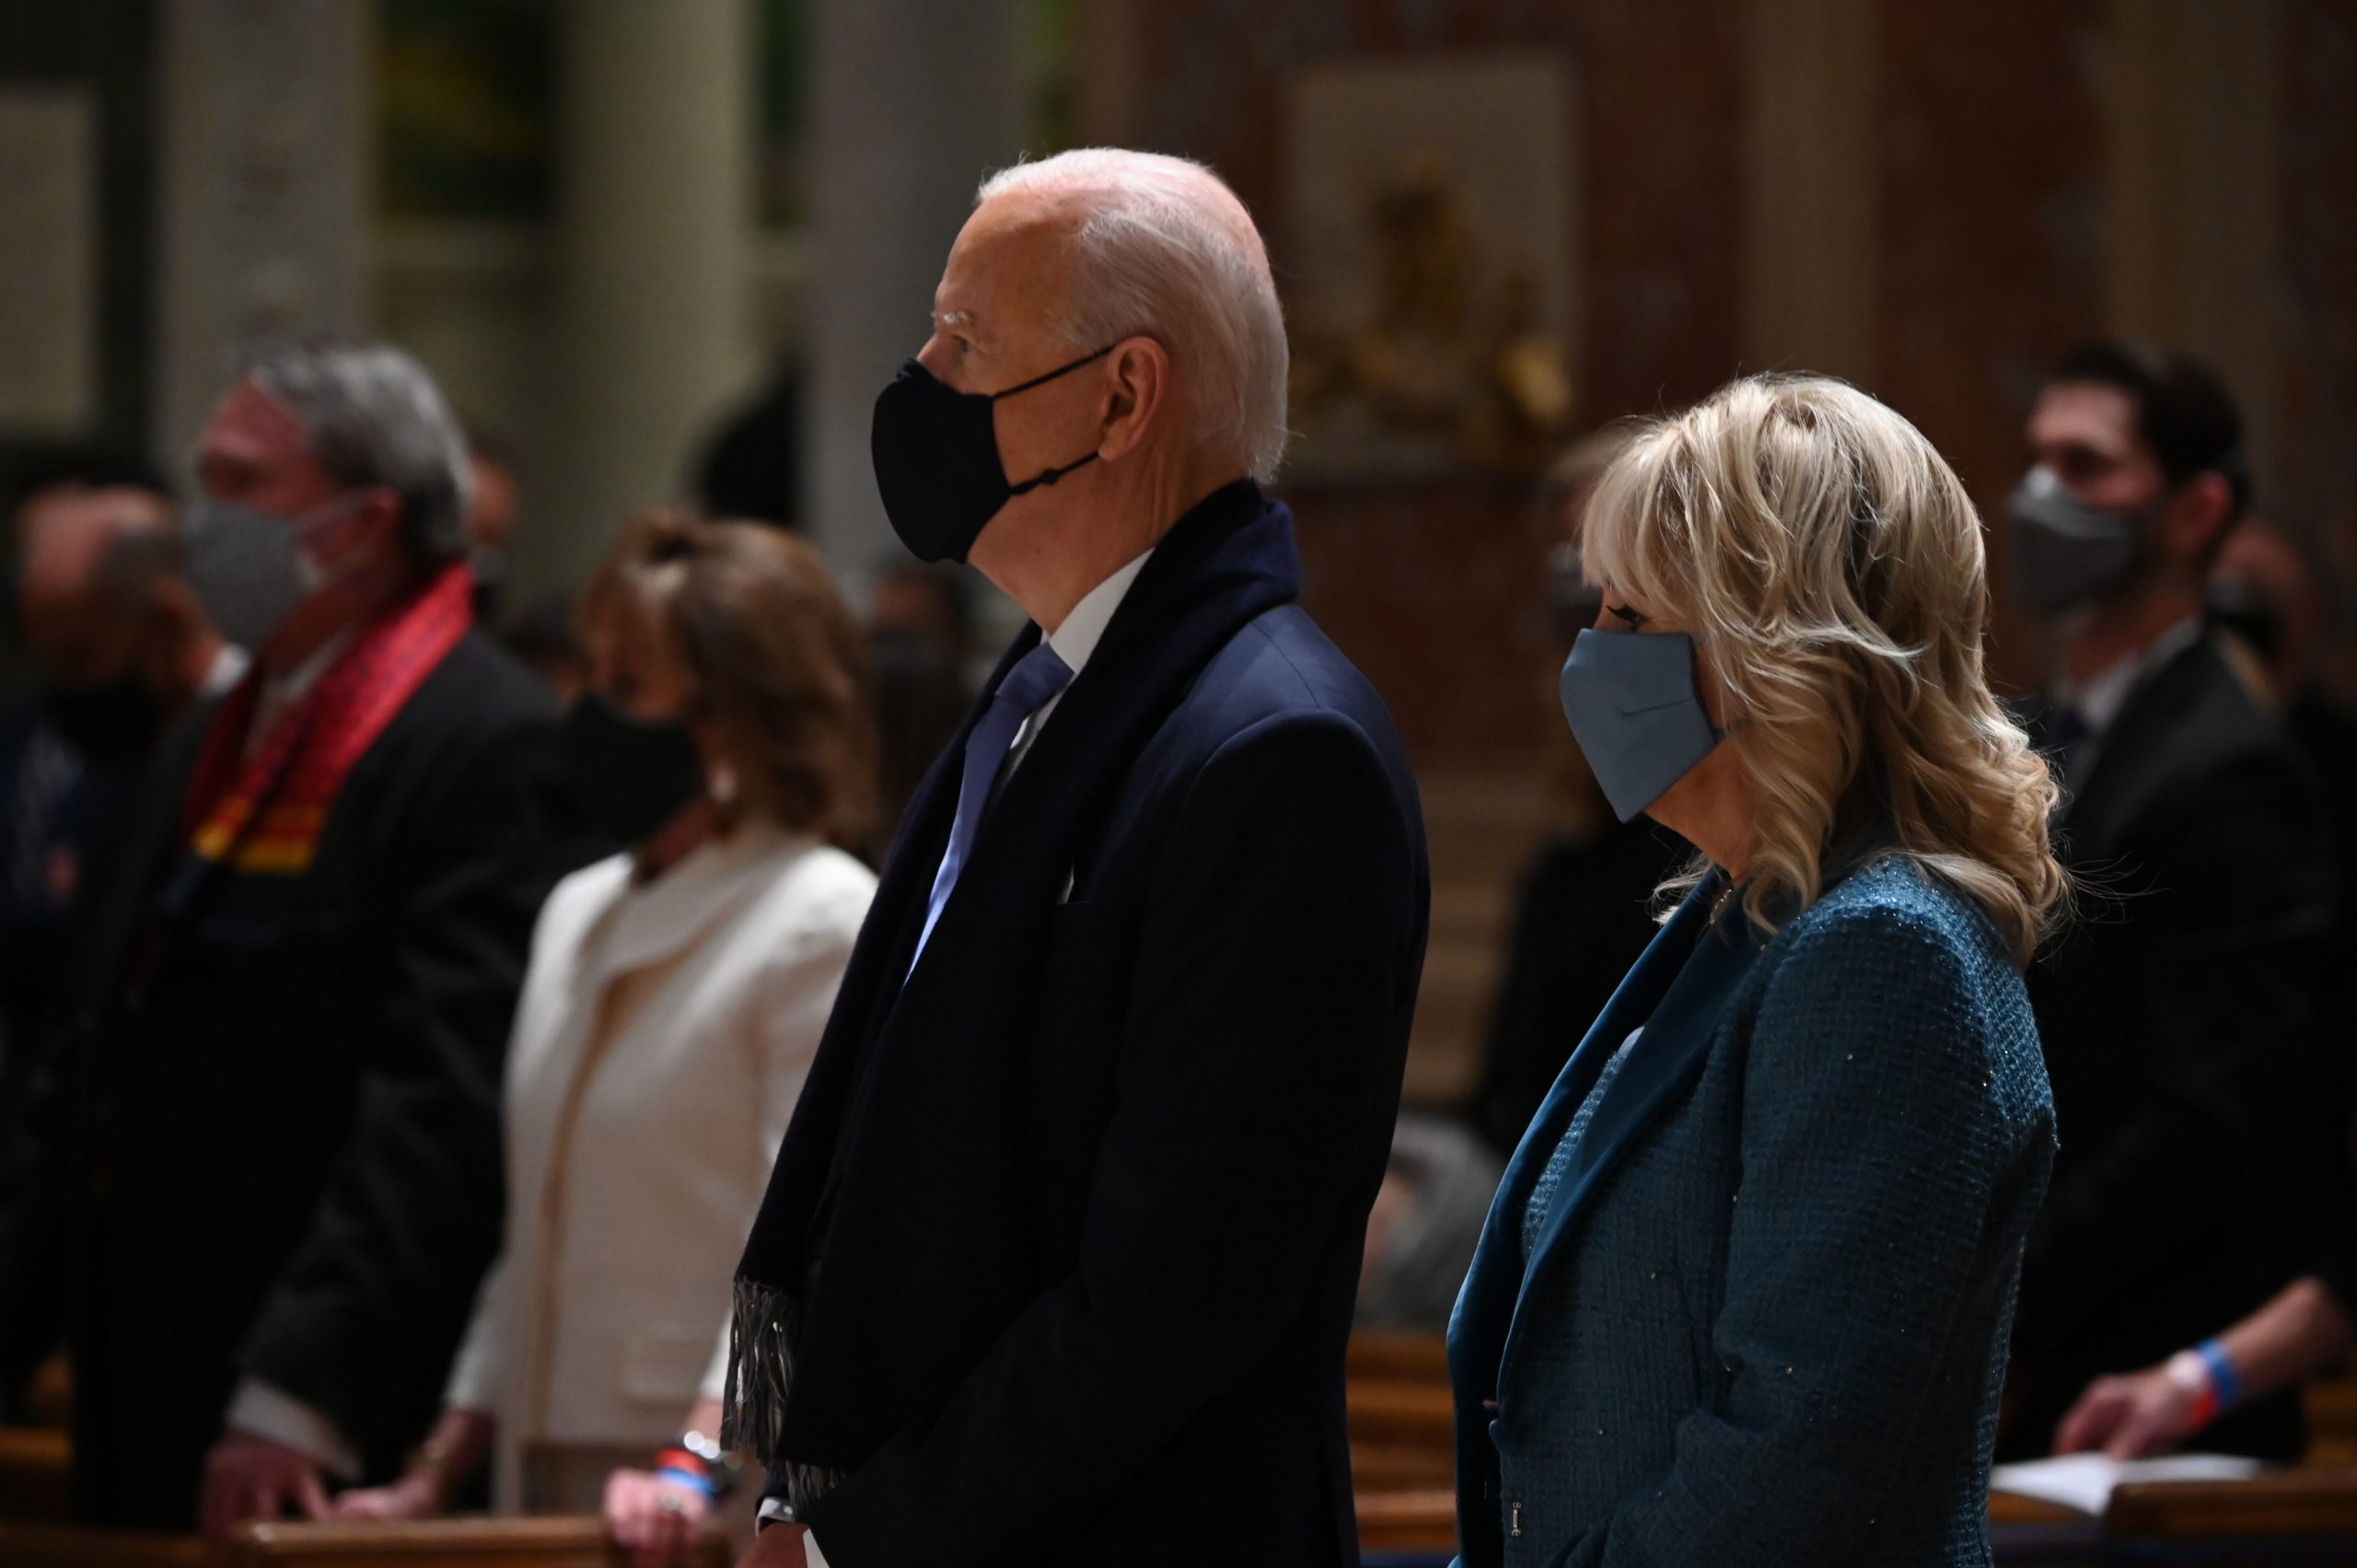 TOPSHOT - US President-elect Joe Biden (C) and incoming First Lady Jill Biden attend Mass at the Cathedral of St. Matthew the Apostle in Washington, DC, on January 20, 2021. - Biden is to be sworn in as the 46th US President at the US Capitol. (Photo by JIM WATSON / AFP) (Photo by JIM WATSON/AFP via Getty Images)